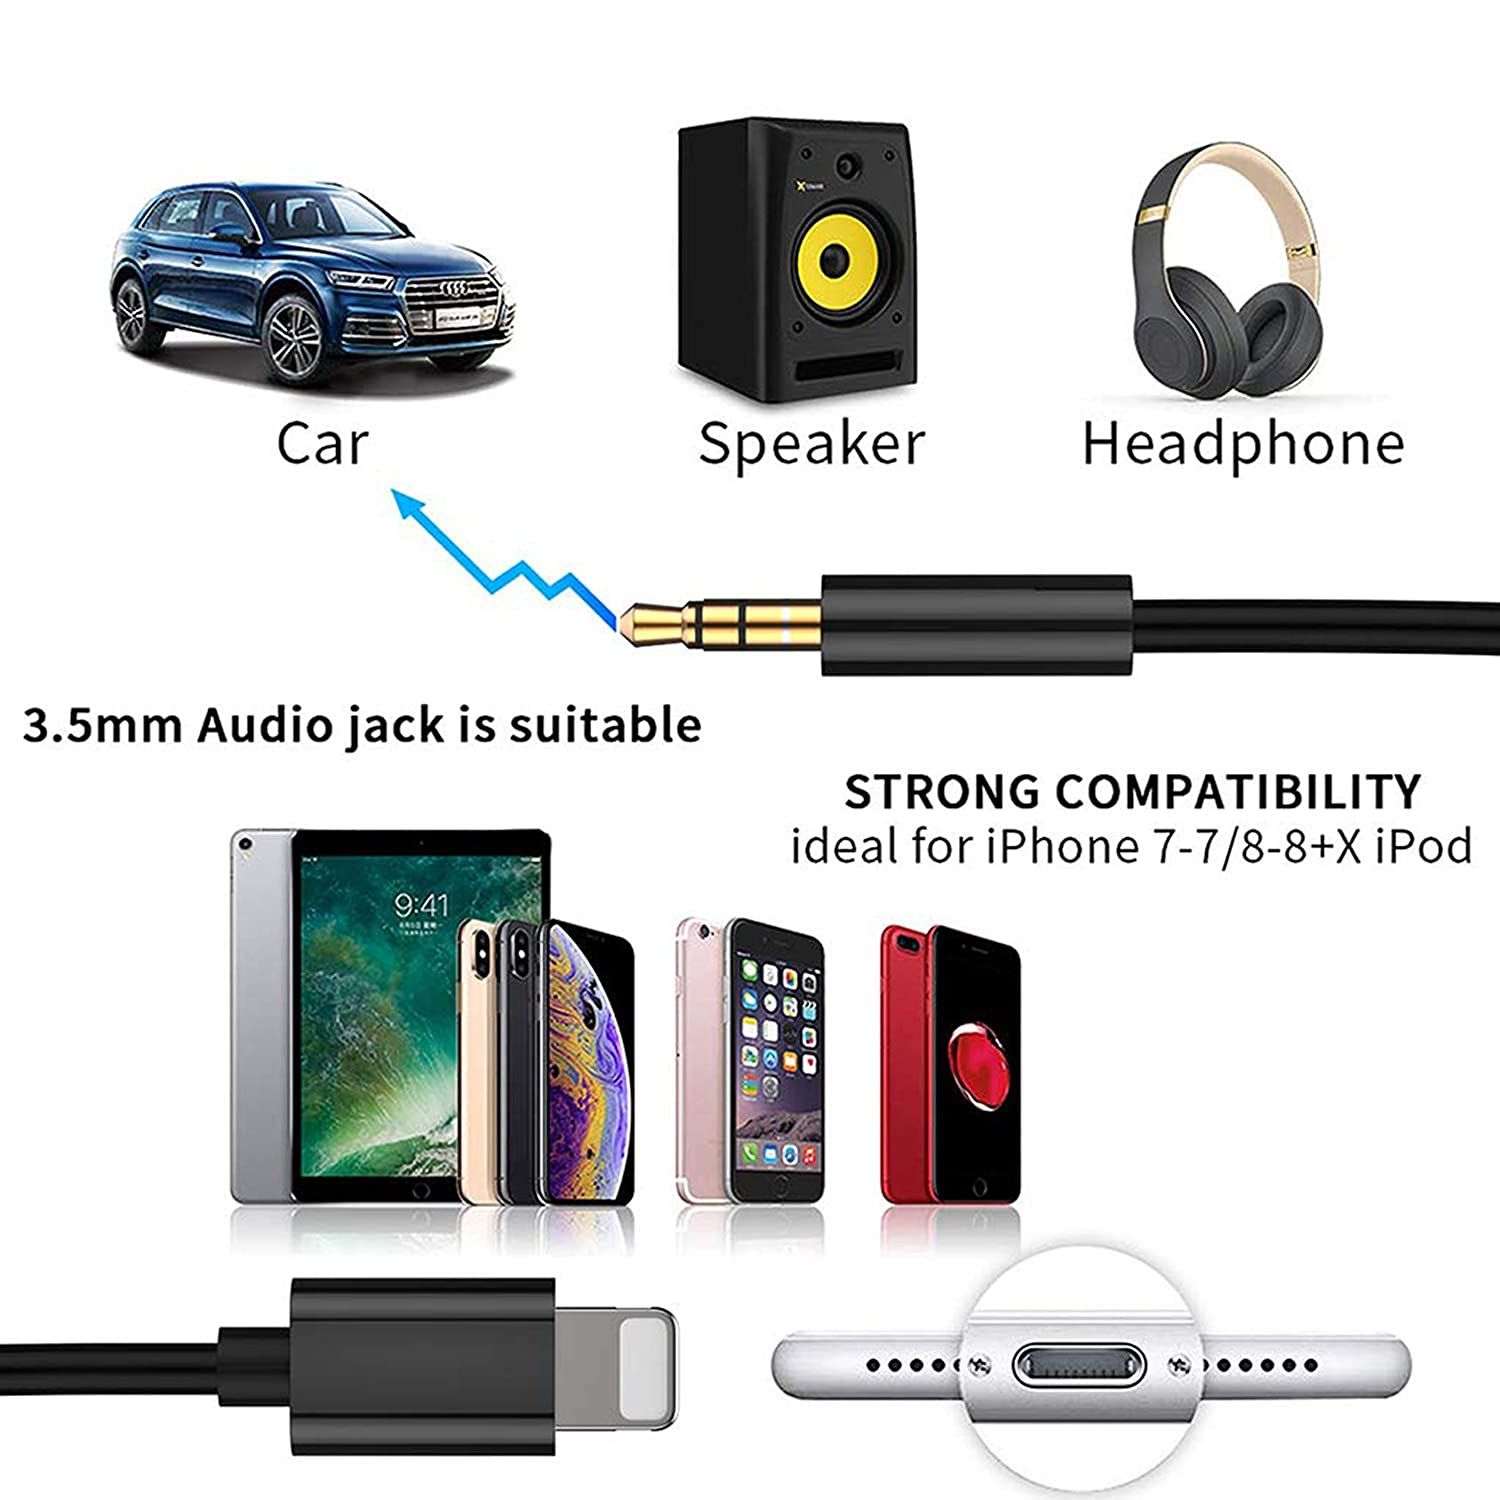 Aux Cord for iPhone 3.5mm Aux Cable for Car AUX Cable to 3.5mm Audio Cable Compatible with iPhone Xs//X//8//8Plus//7 for Car Stereo//Speaker//Headphone Support All iOS System Braided Black Red 2 Pack